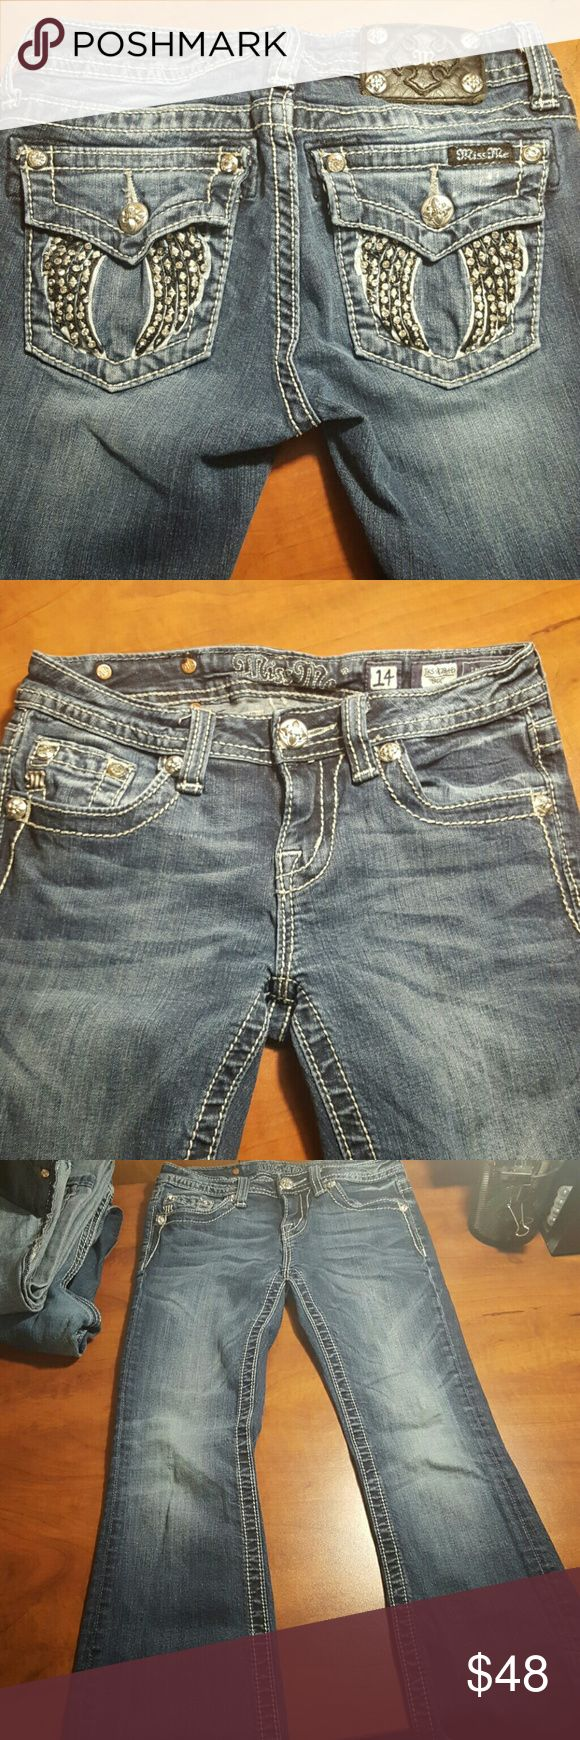 ??Excellent shape girls Miss Me jeans Like new girls size 14 Miss Me jeans. Miss Me Bottoms Jeans